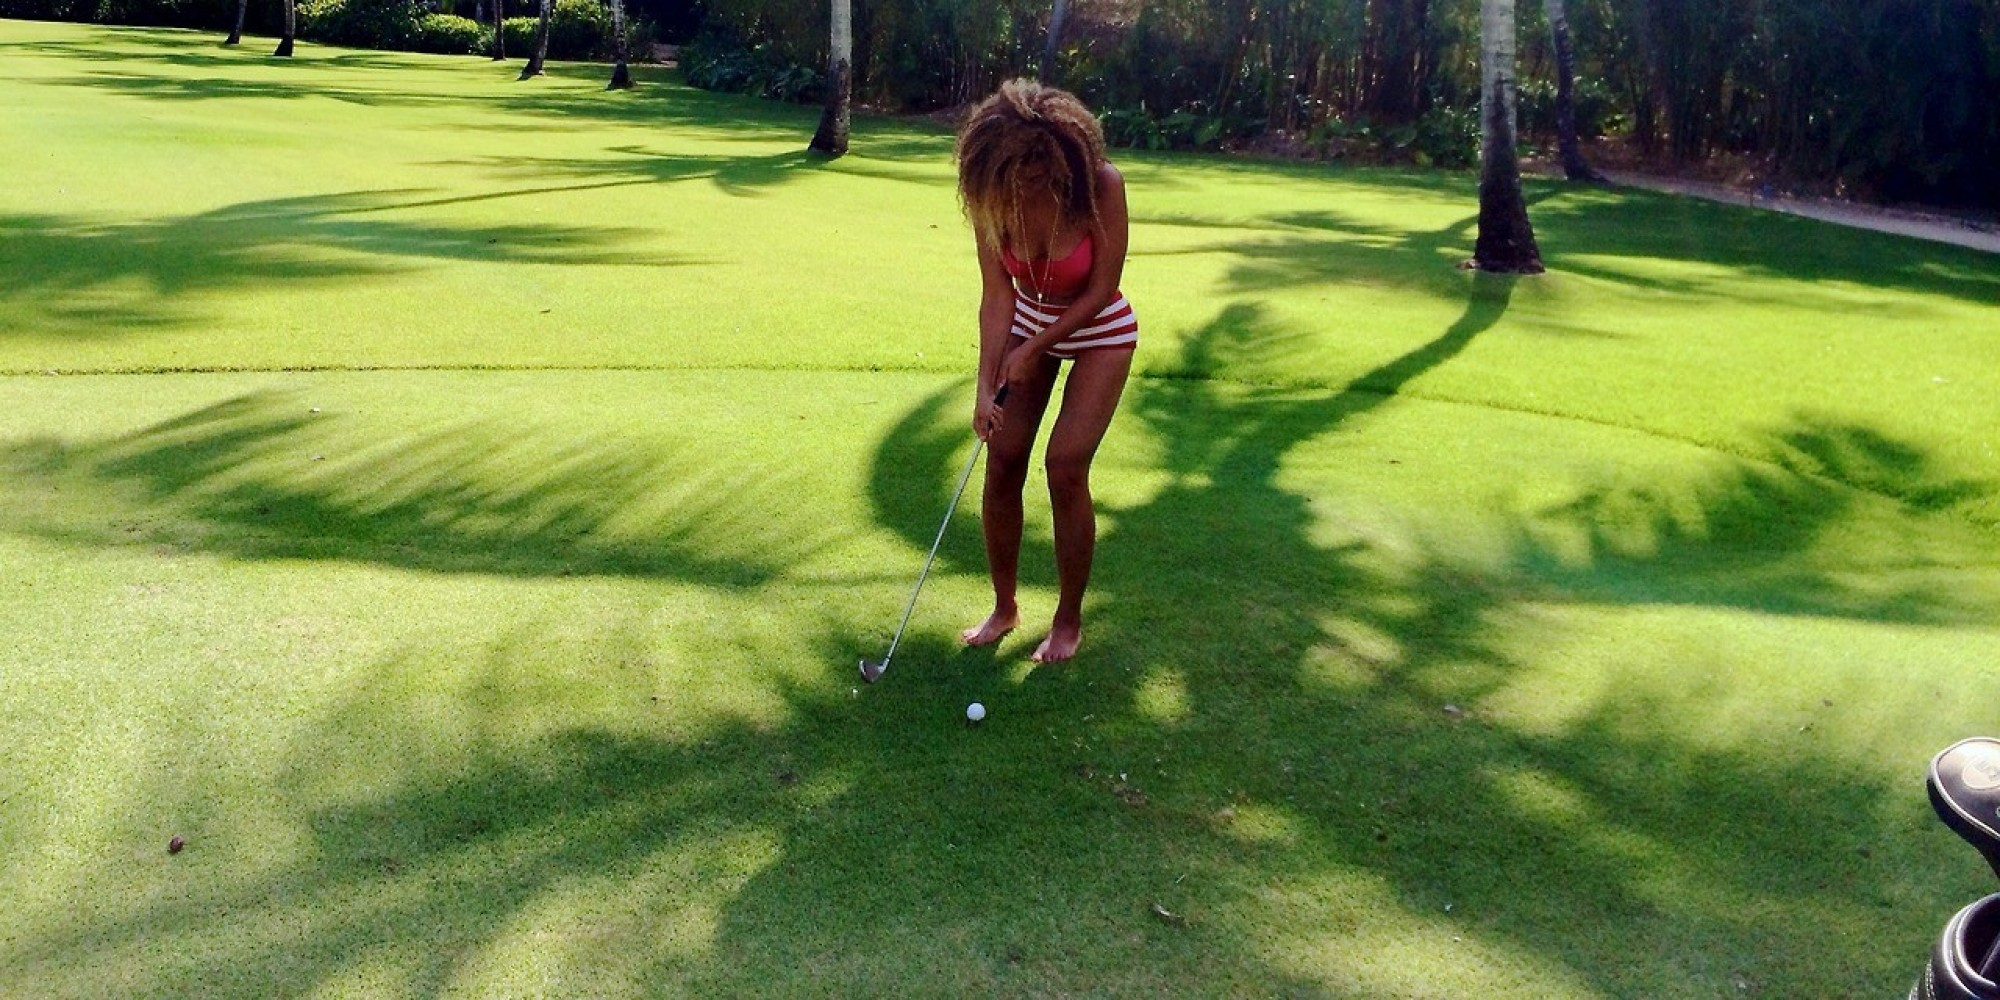 Beyonce Photoshopping Thighs In Pic To Create 'Gap ...